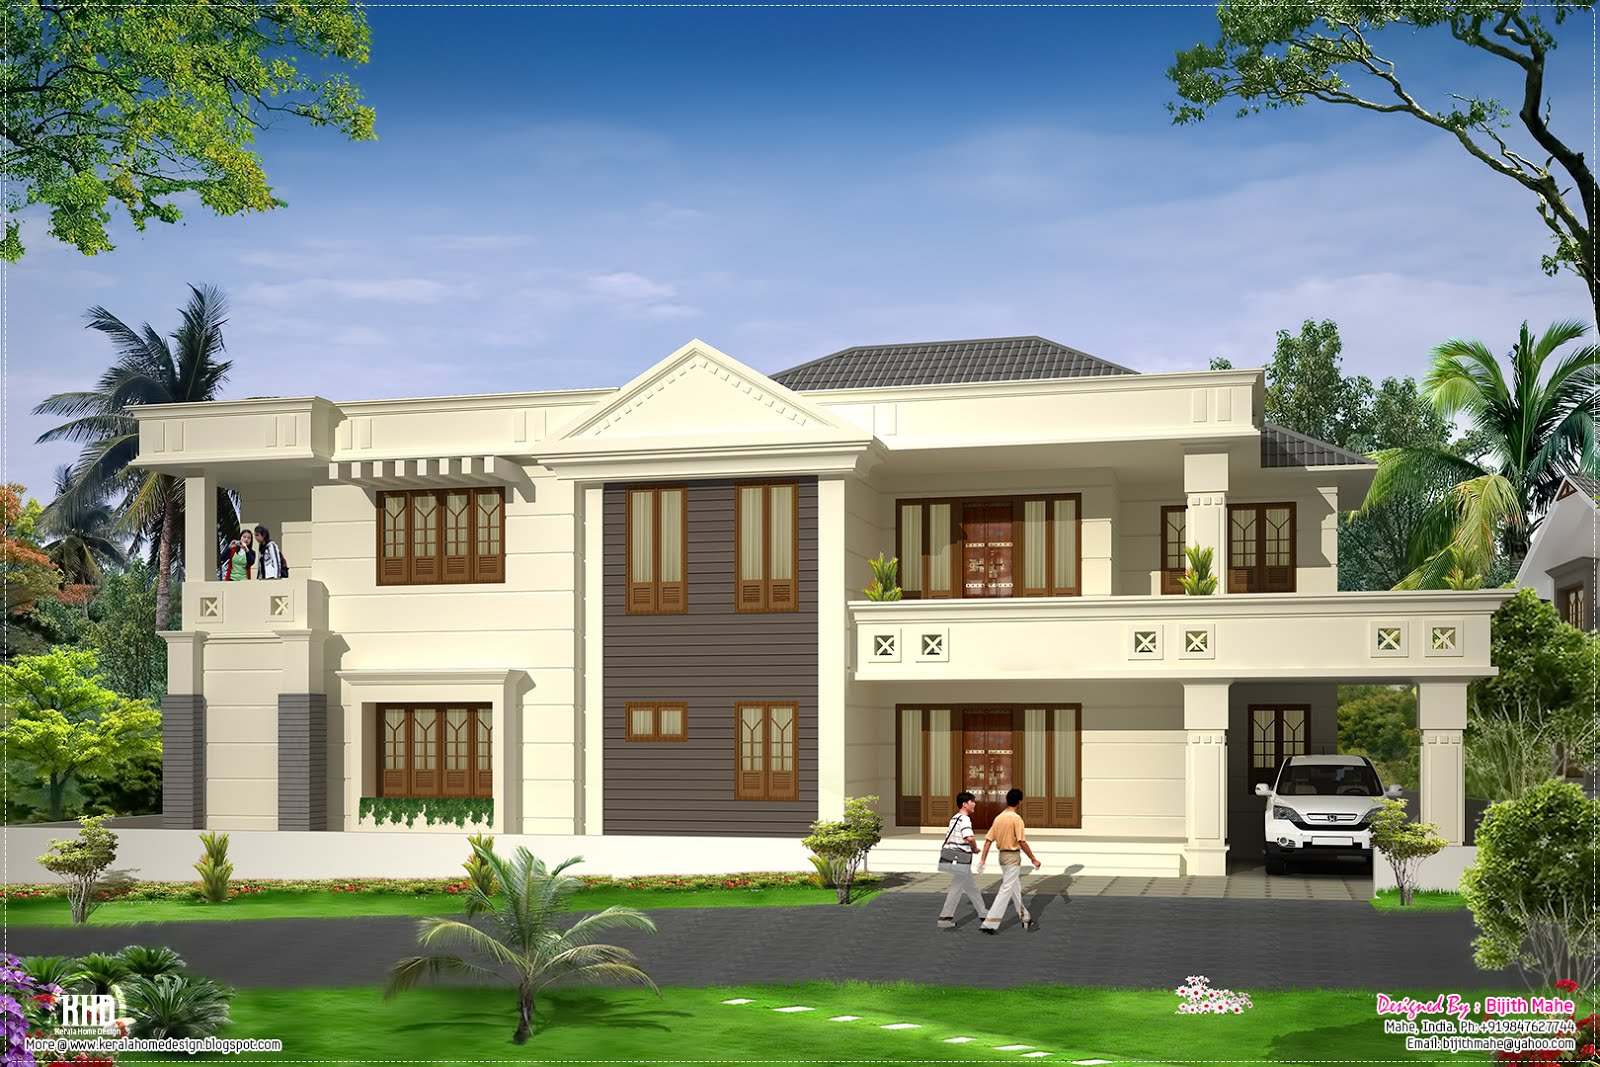 Modern luxury home design kerala home design and floor plans - Luxury home designs plans ...